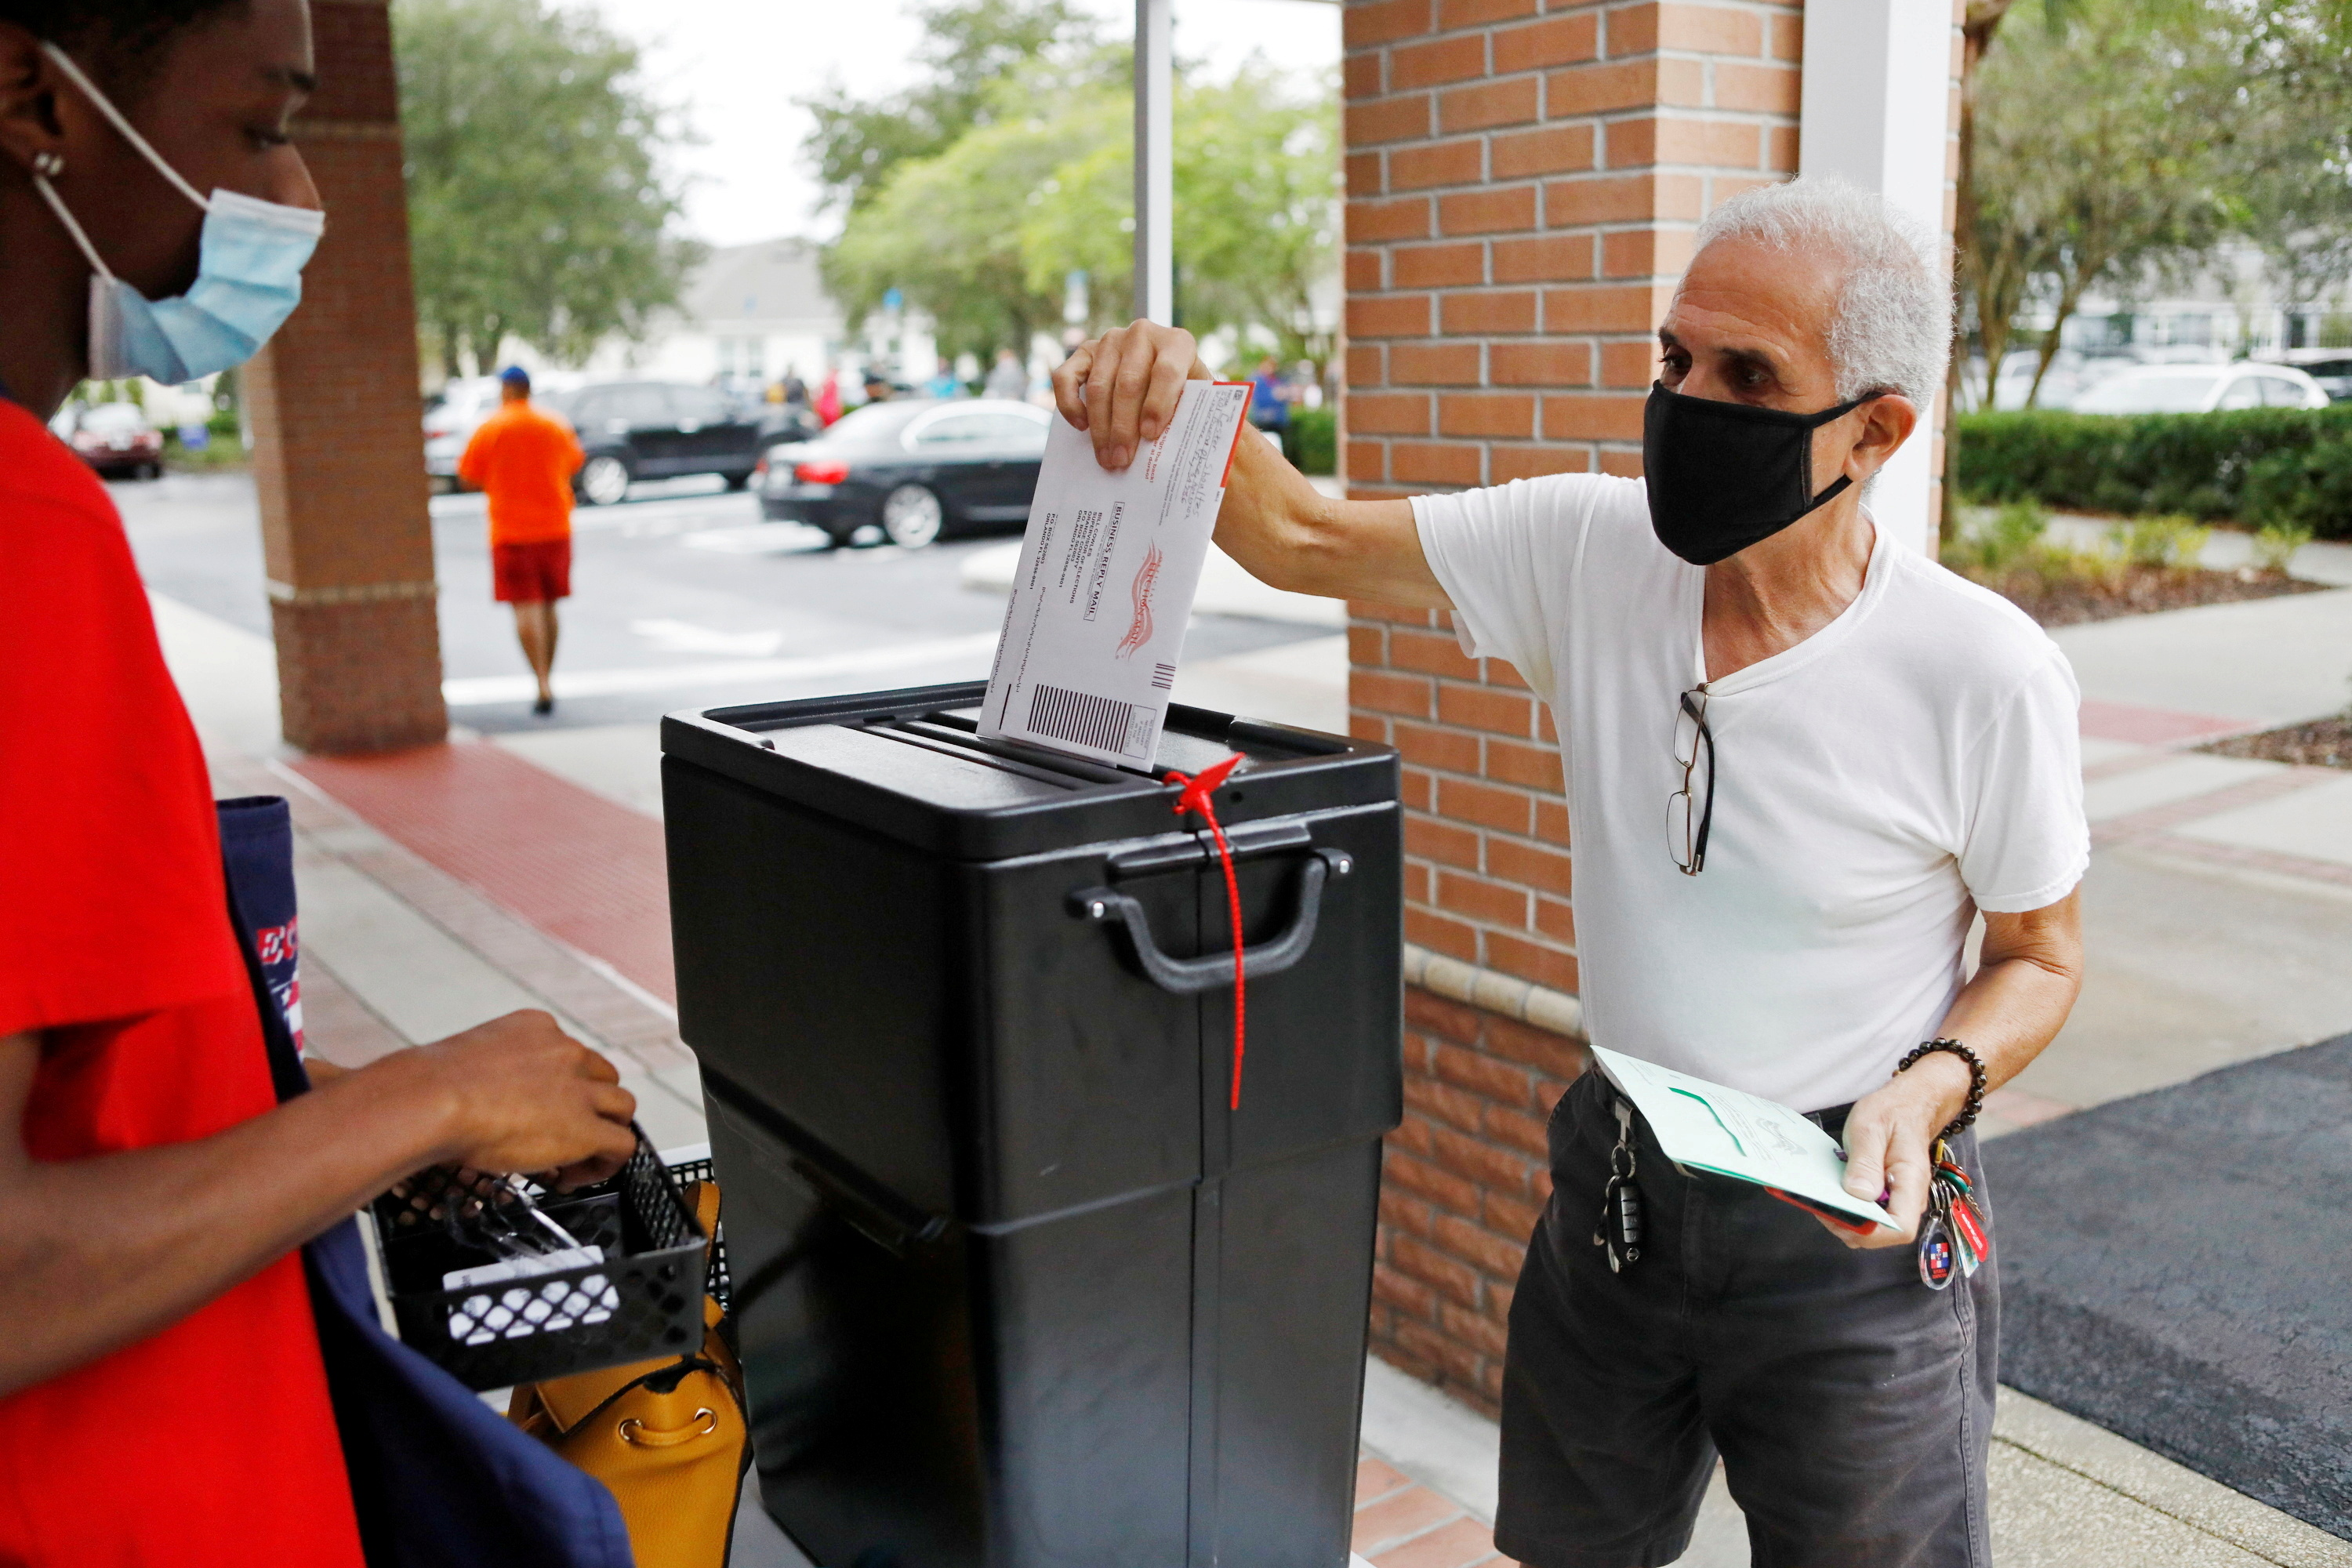 Florida resident Valentine Lugo casts his mail-in ballot at the Winter Garden Library polling station as early voting begins ahead of the election in Orlando, Florida, U.S. October 19, 2020.  REUTERS/Octavio Jones